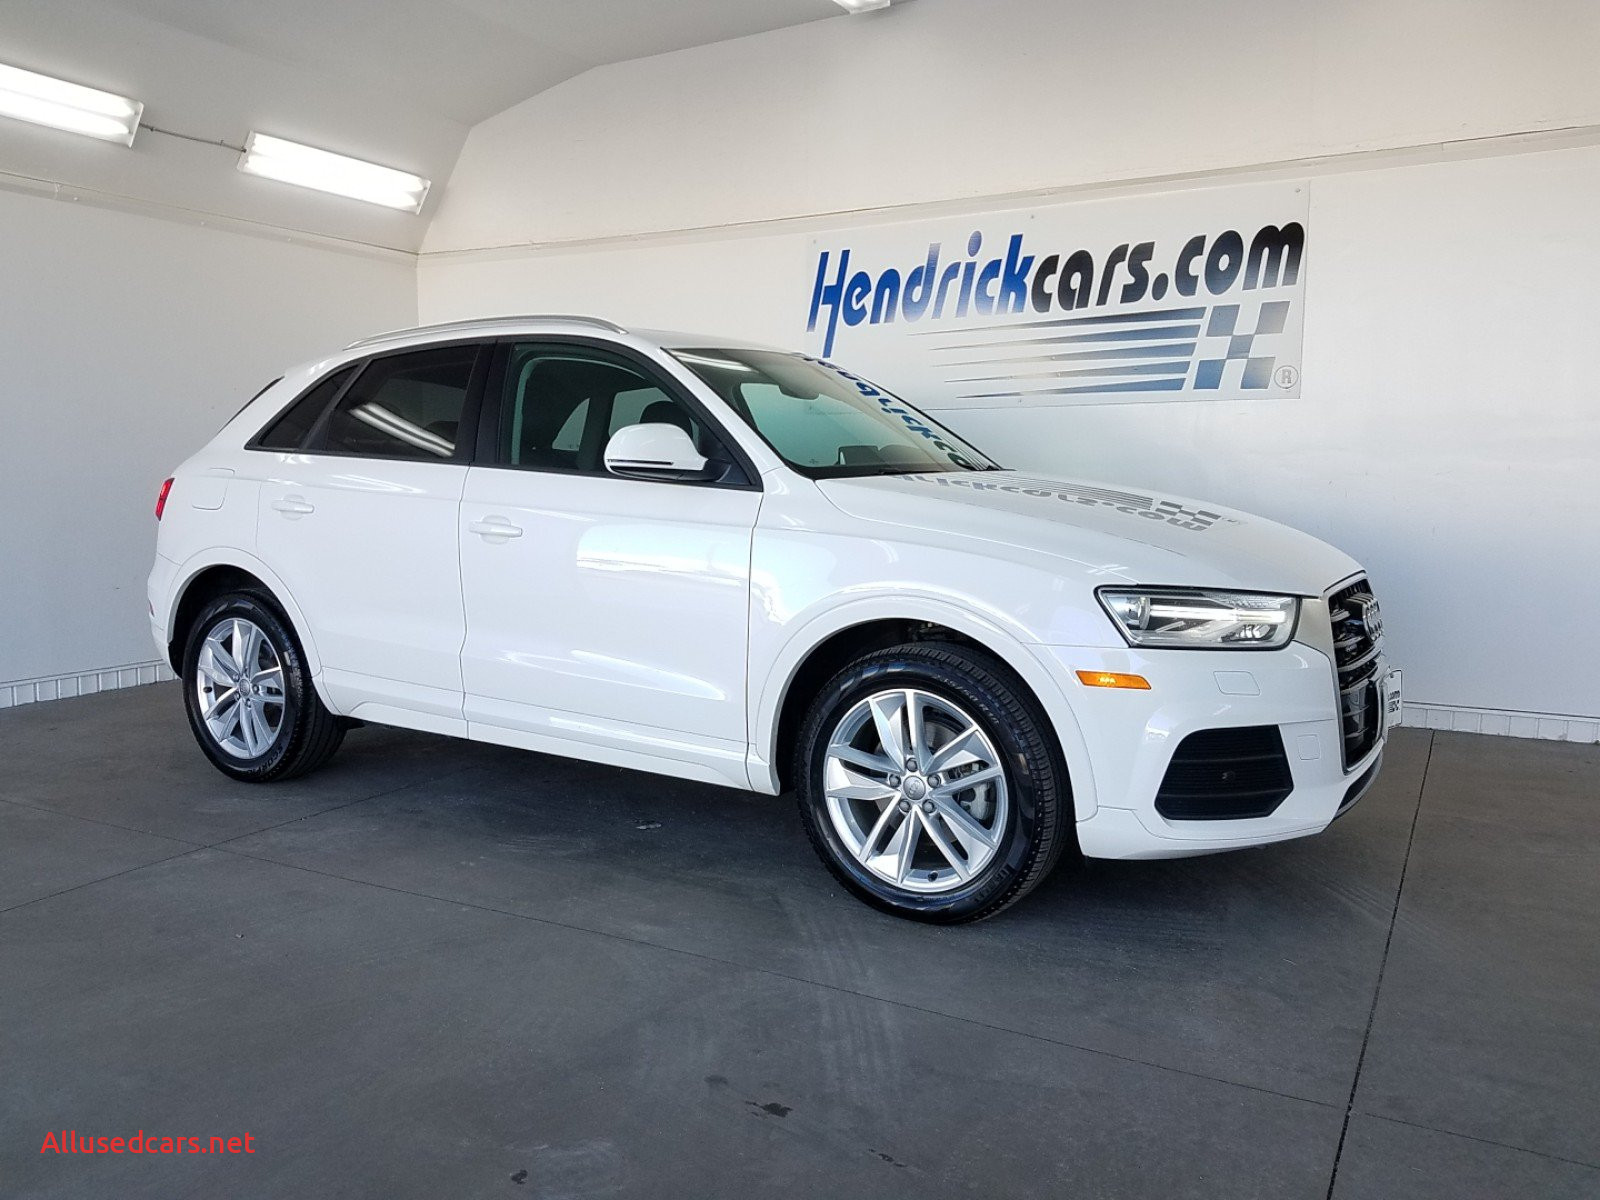 Audi Q3 for Sale Beautiful Pre Owned 2017 Audi Q3 Premium